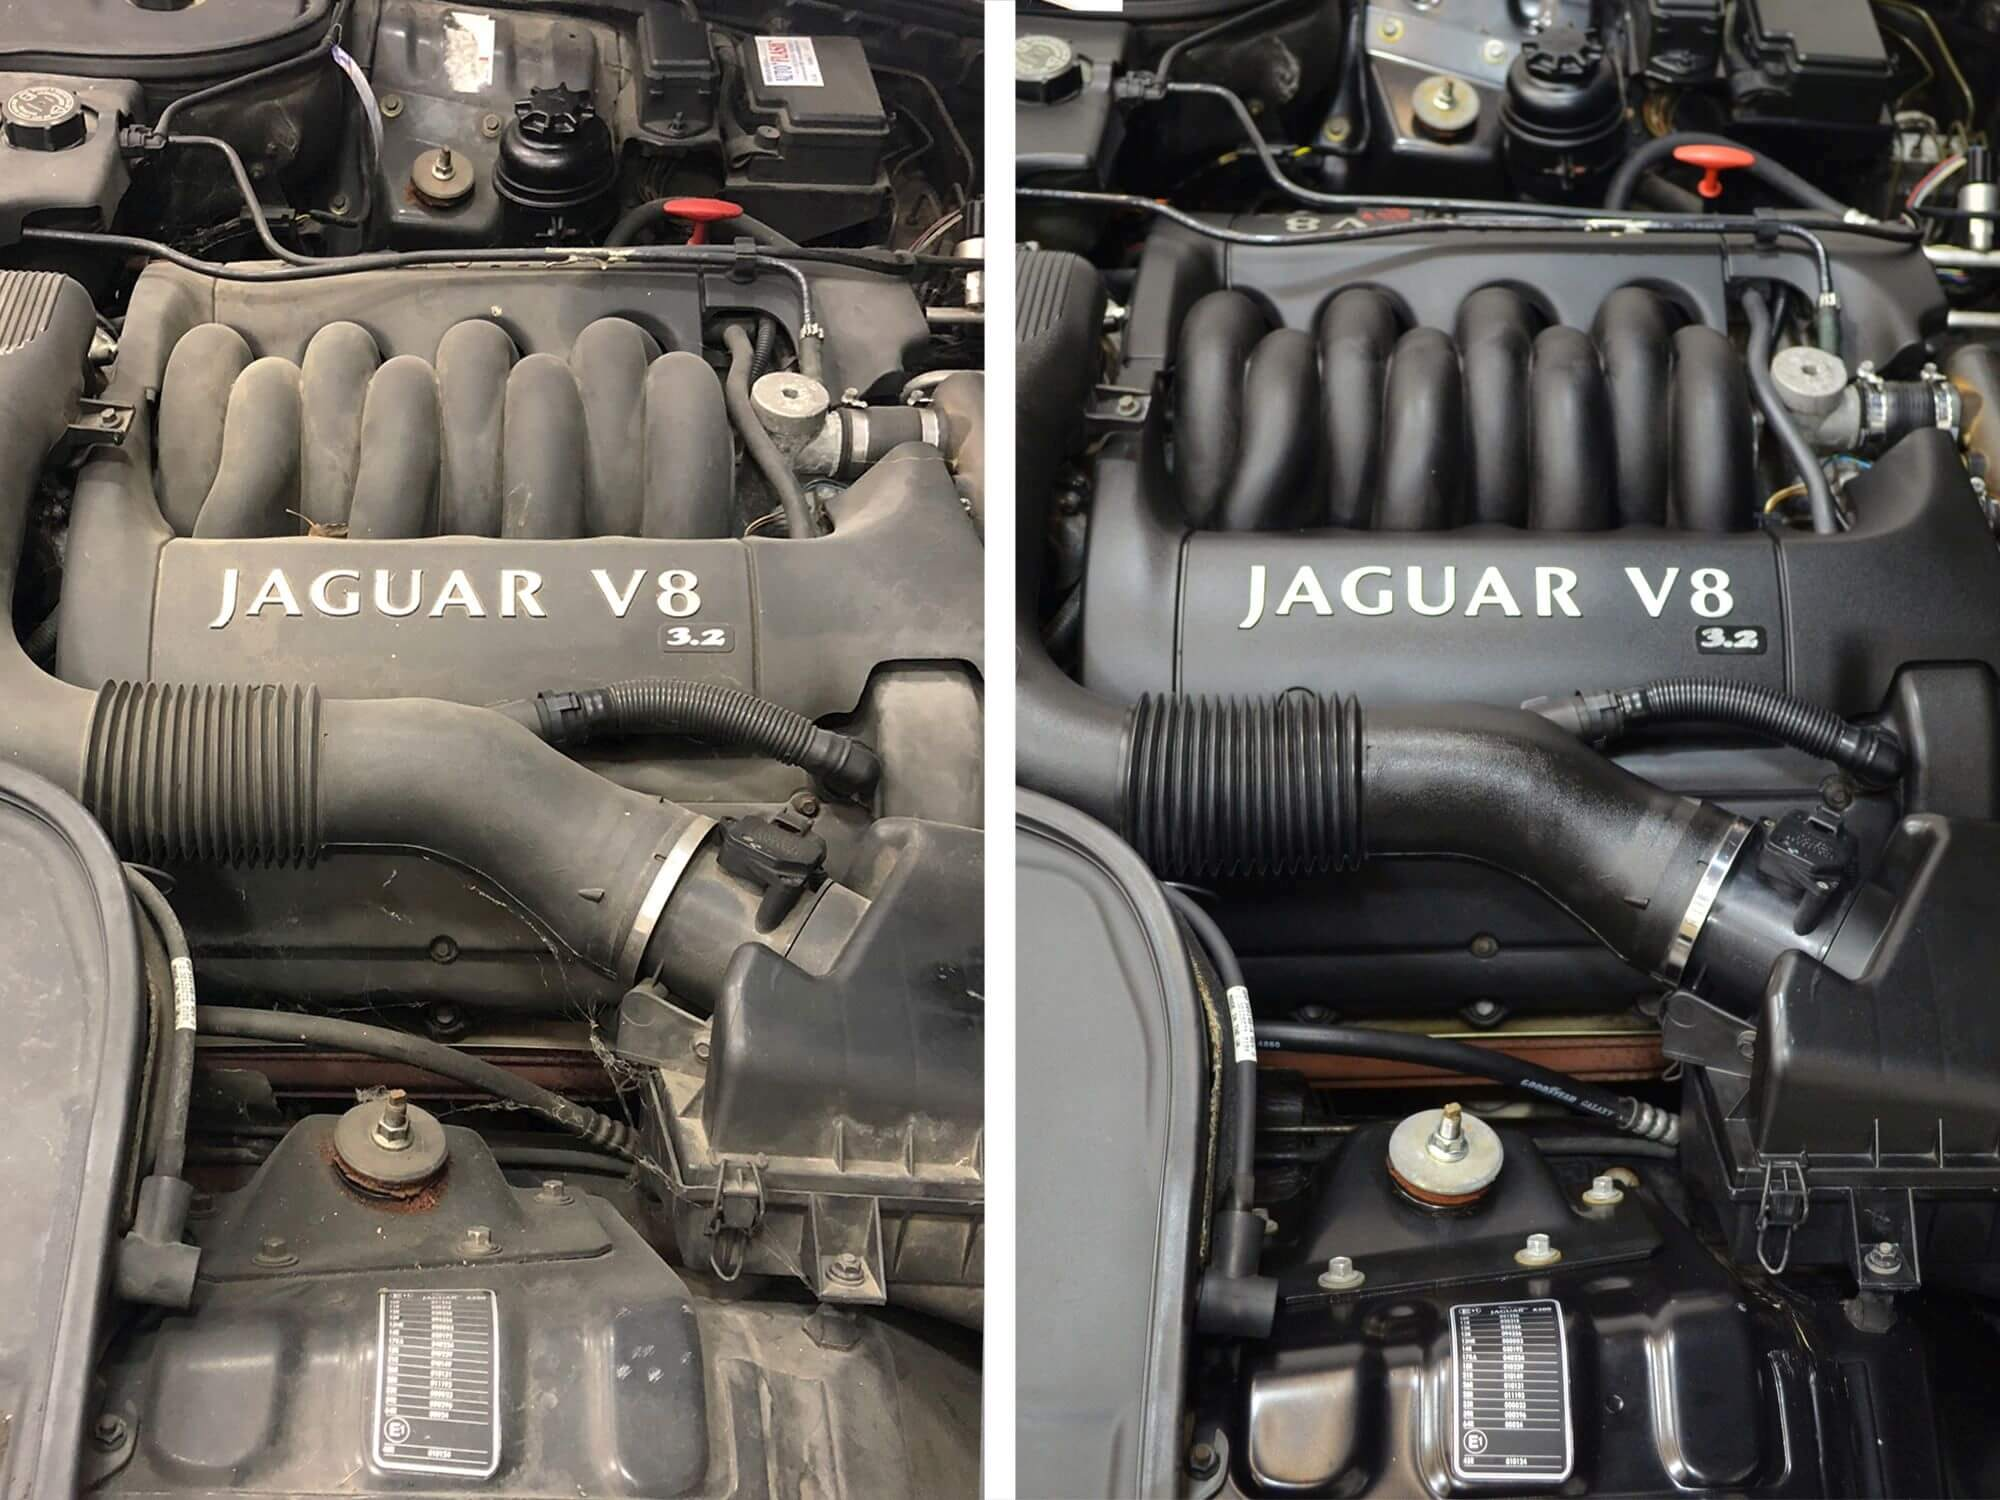 DK gallery photo 13 engine bay detailing before / after